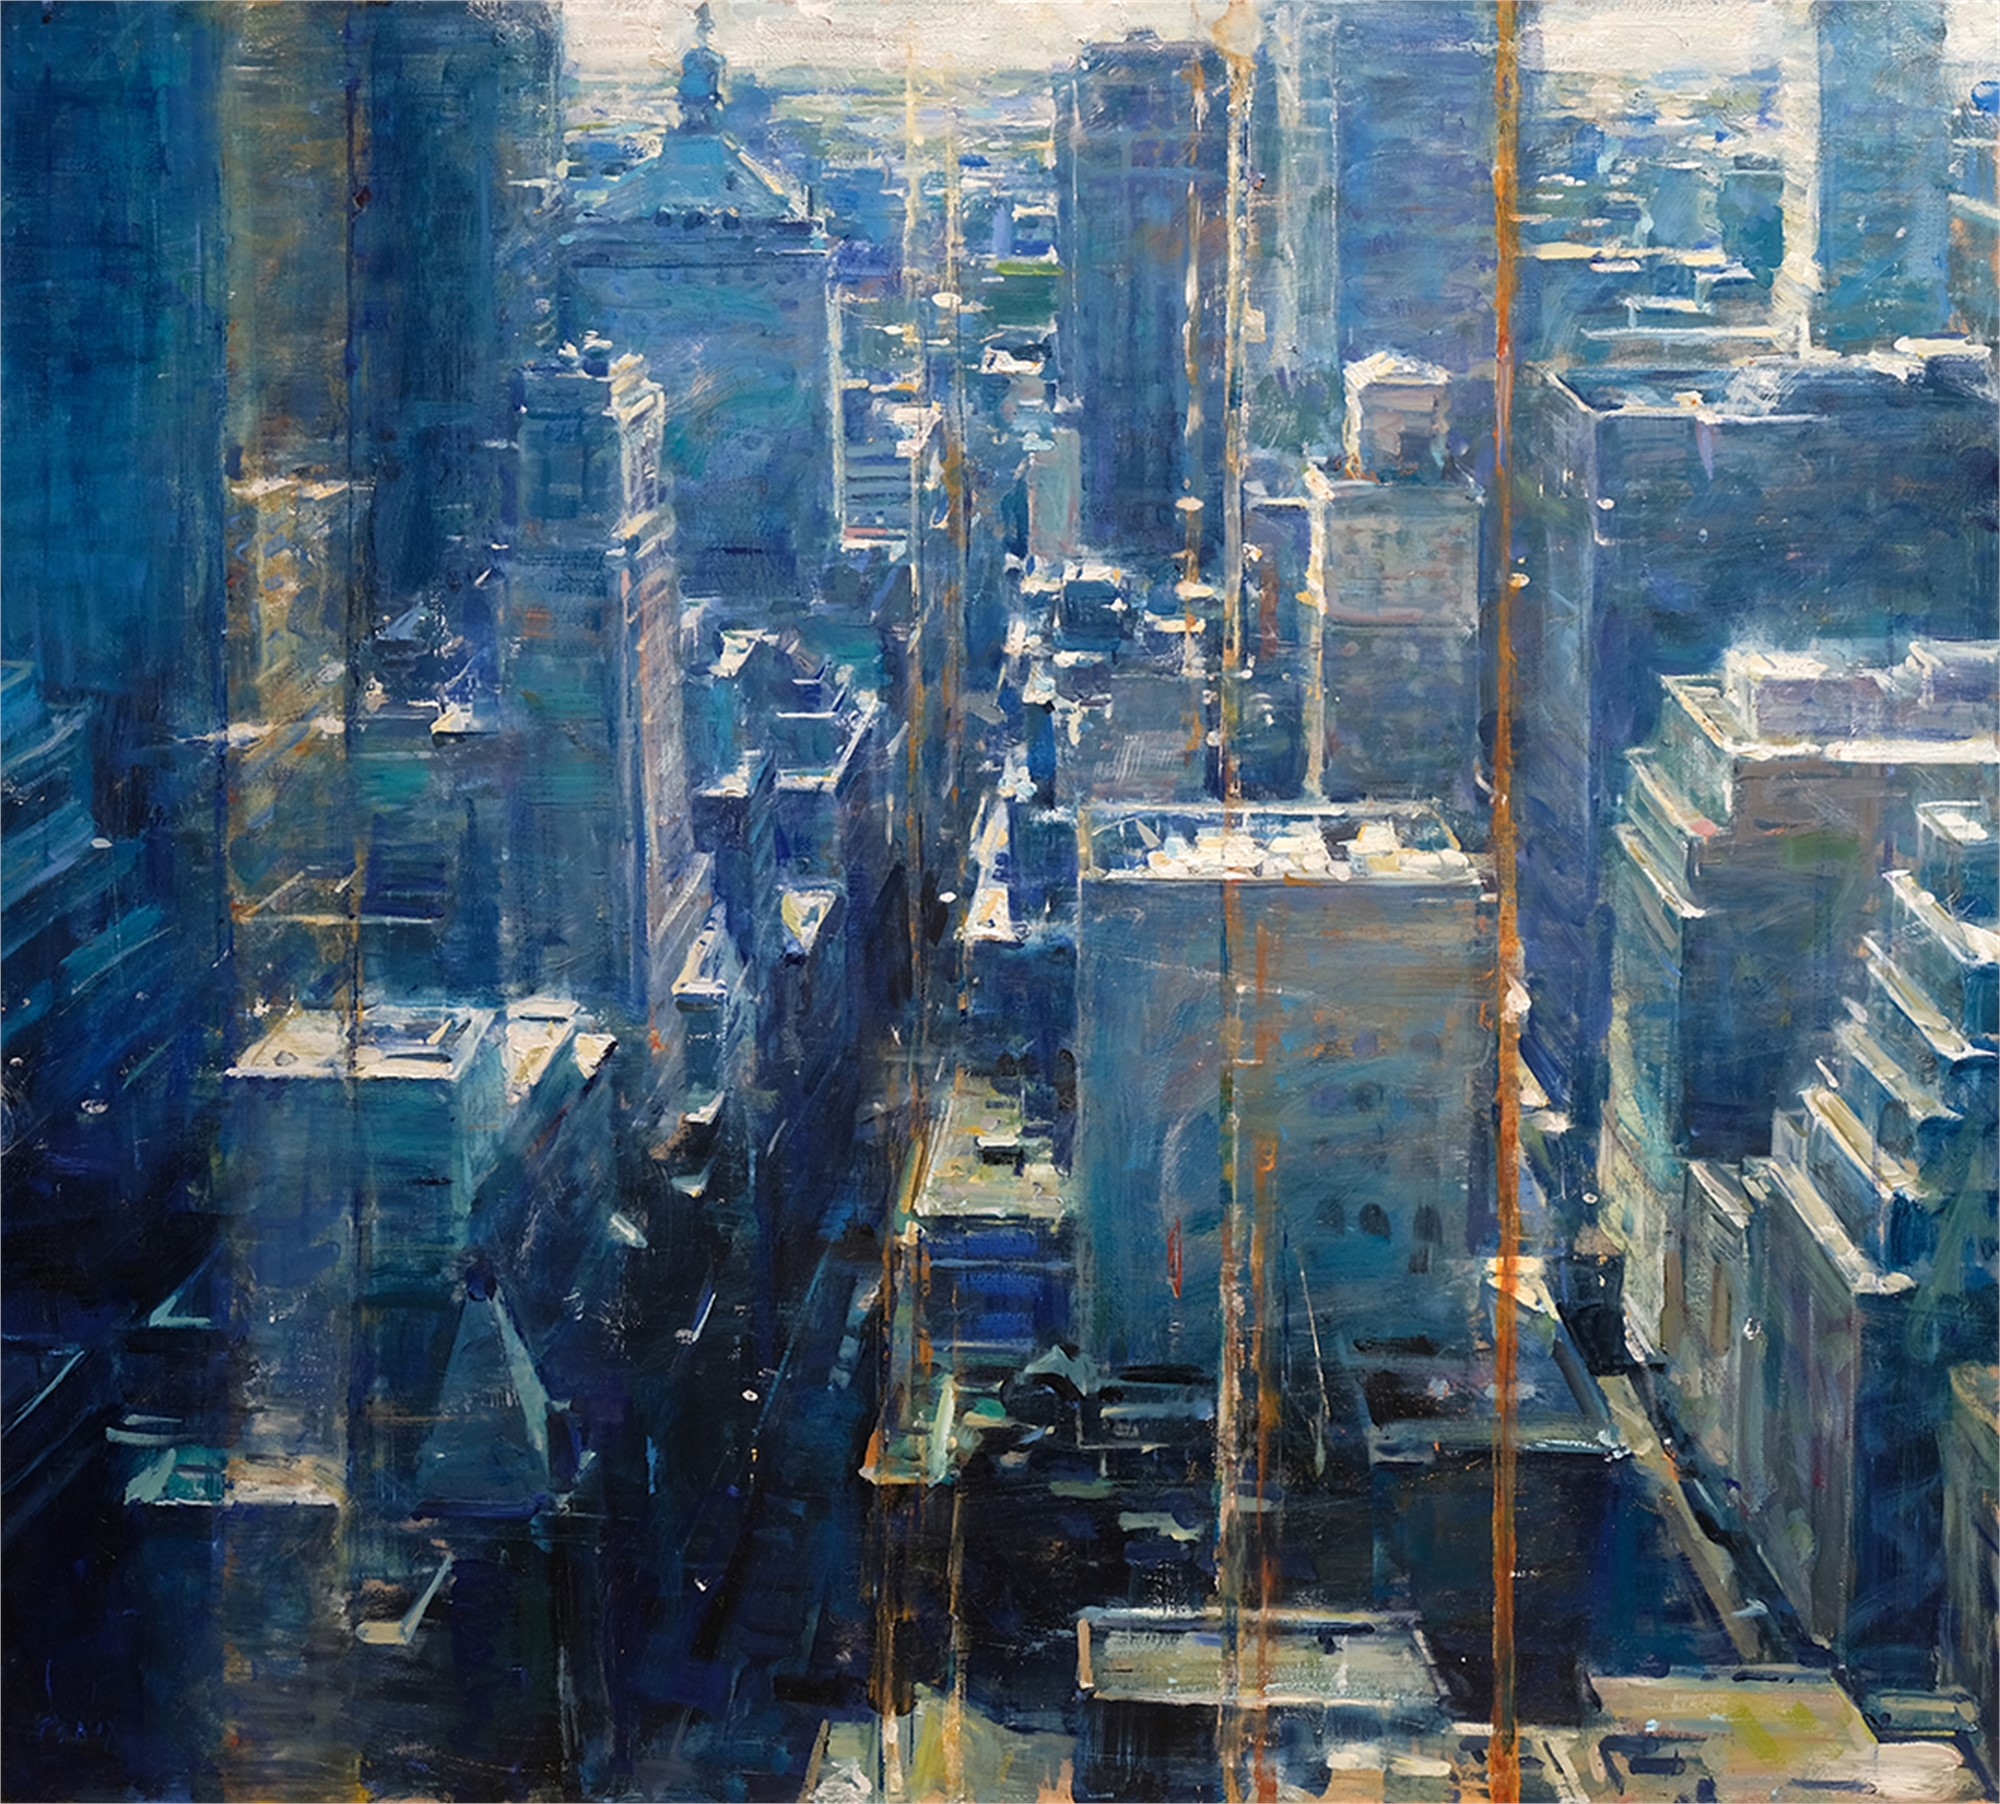 Manhattan II by Derek Penix